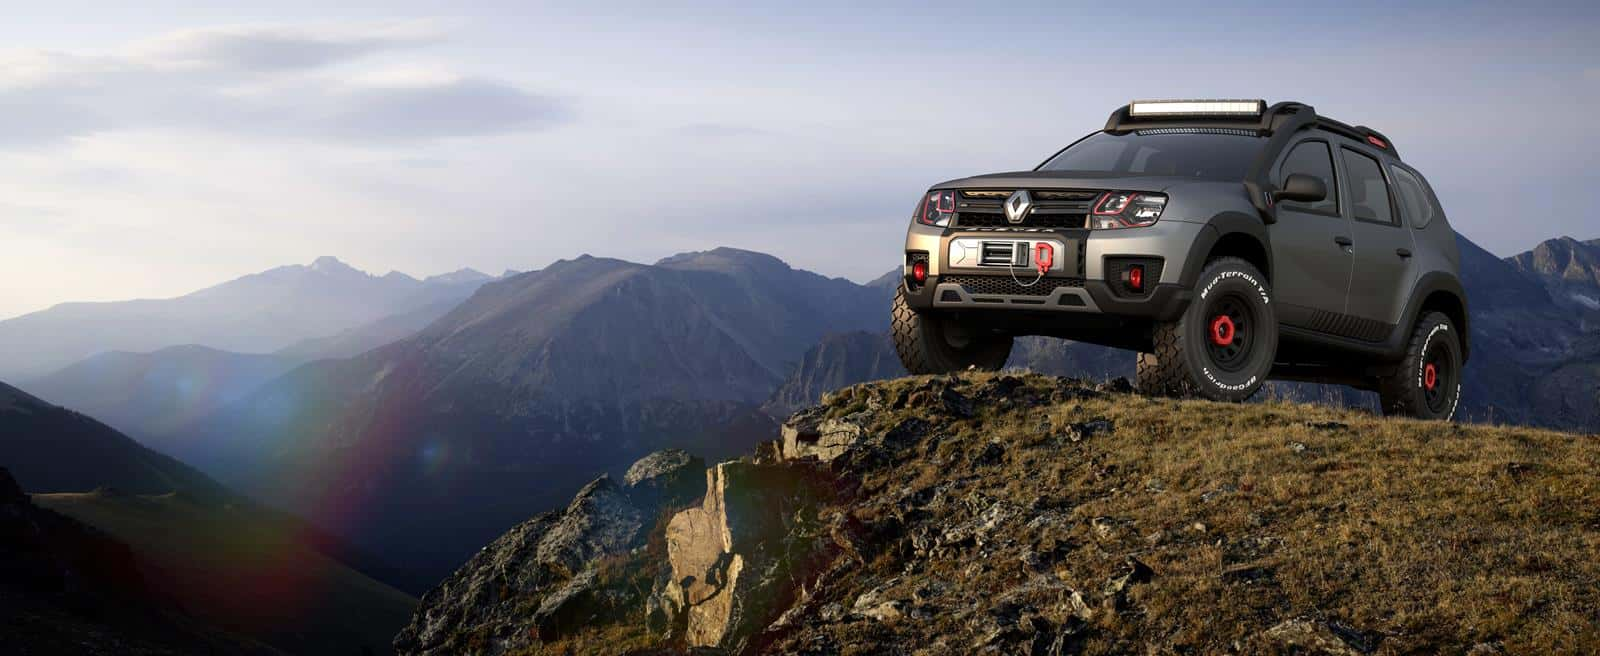 2016-renault-duster-extreme-concept-3